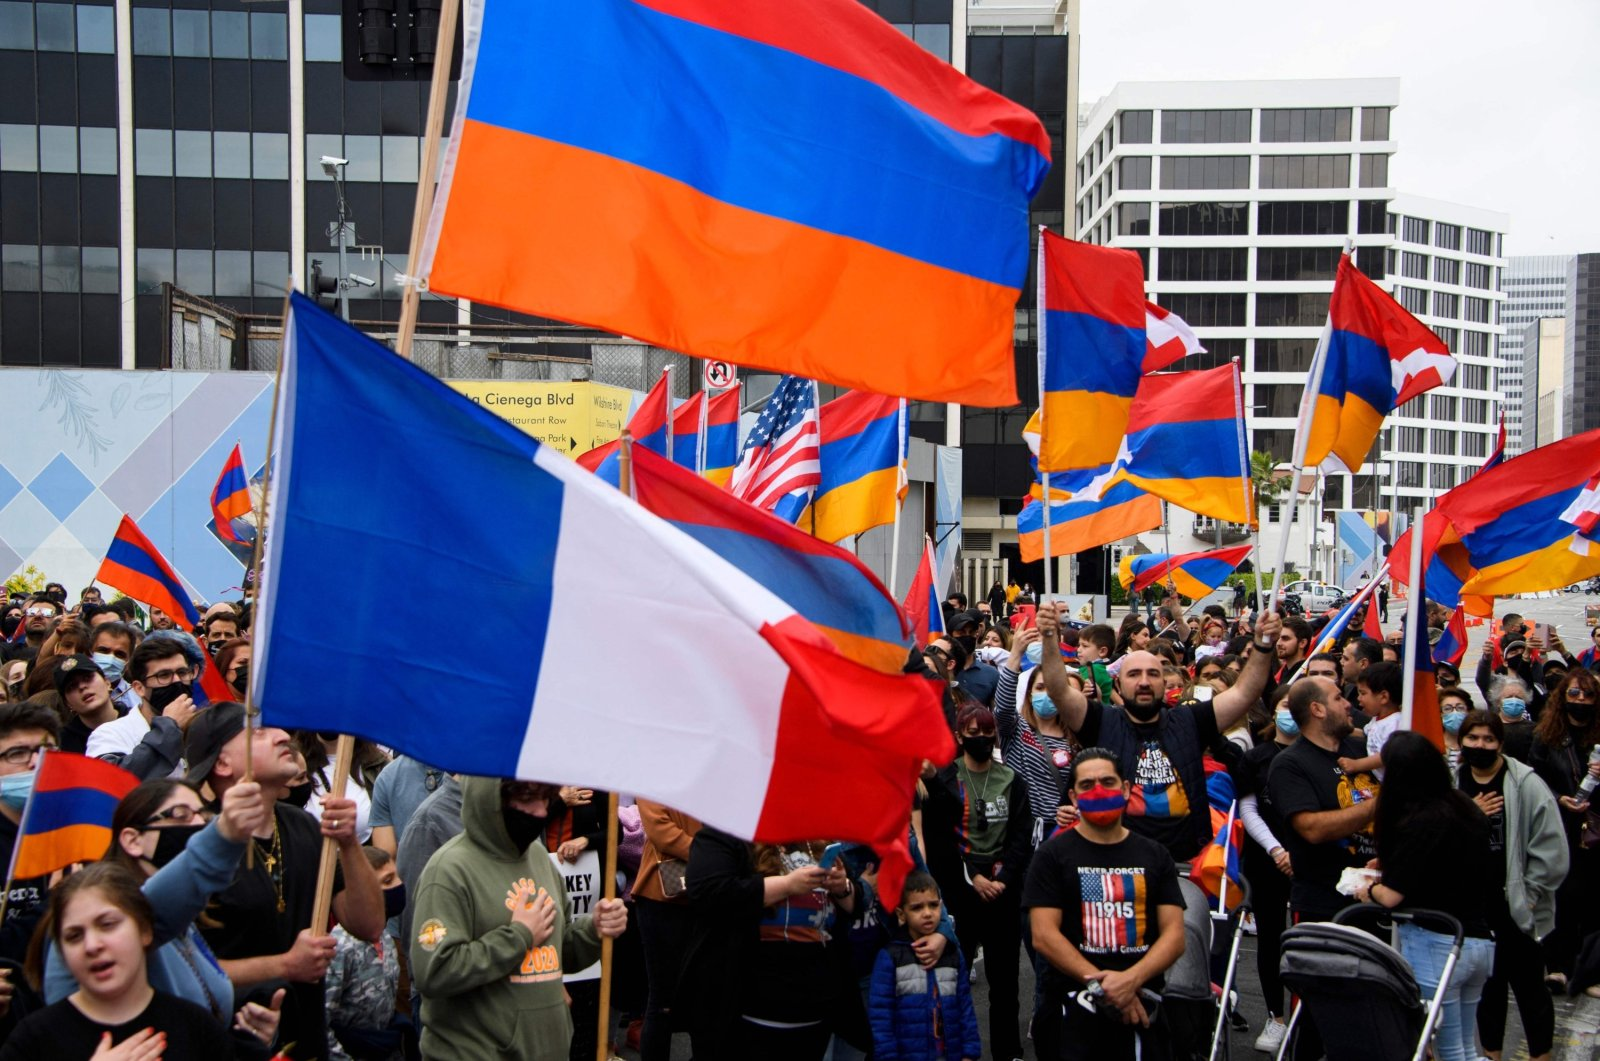 A French flag is waved alongside Armenian flags as people protest outside of the Turkish Consulate on the anniversary of the 1915 events in a demonstration organized by the Armenian Youth Federation (AYF) in Beverly Hills, California, U.S., April 24, 2021. (AFP File Photo)